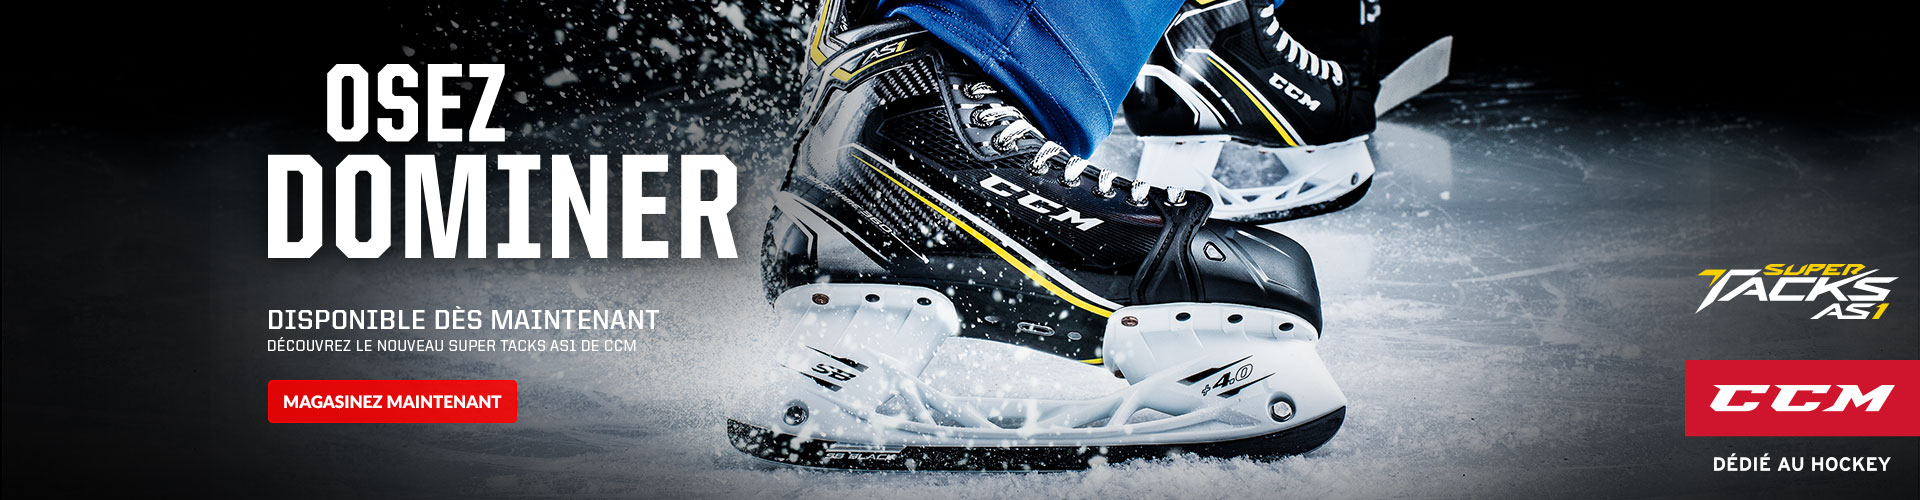 Find the all-new CCM Super Tacks AS1 hockey skates available for sale at Source For Sports today near you.